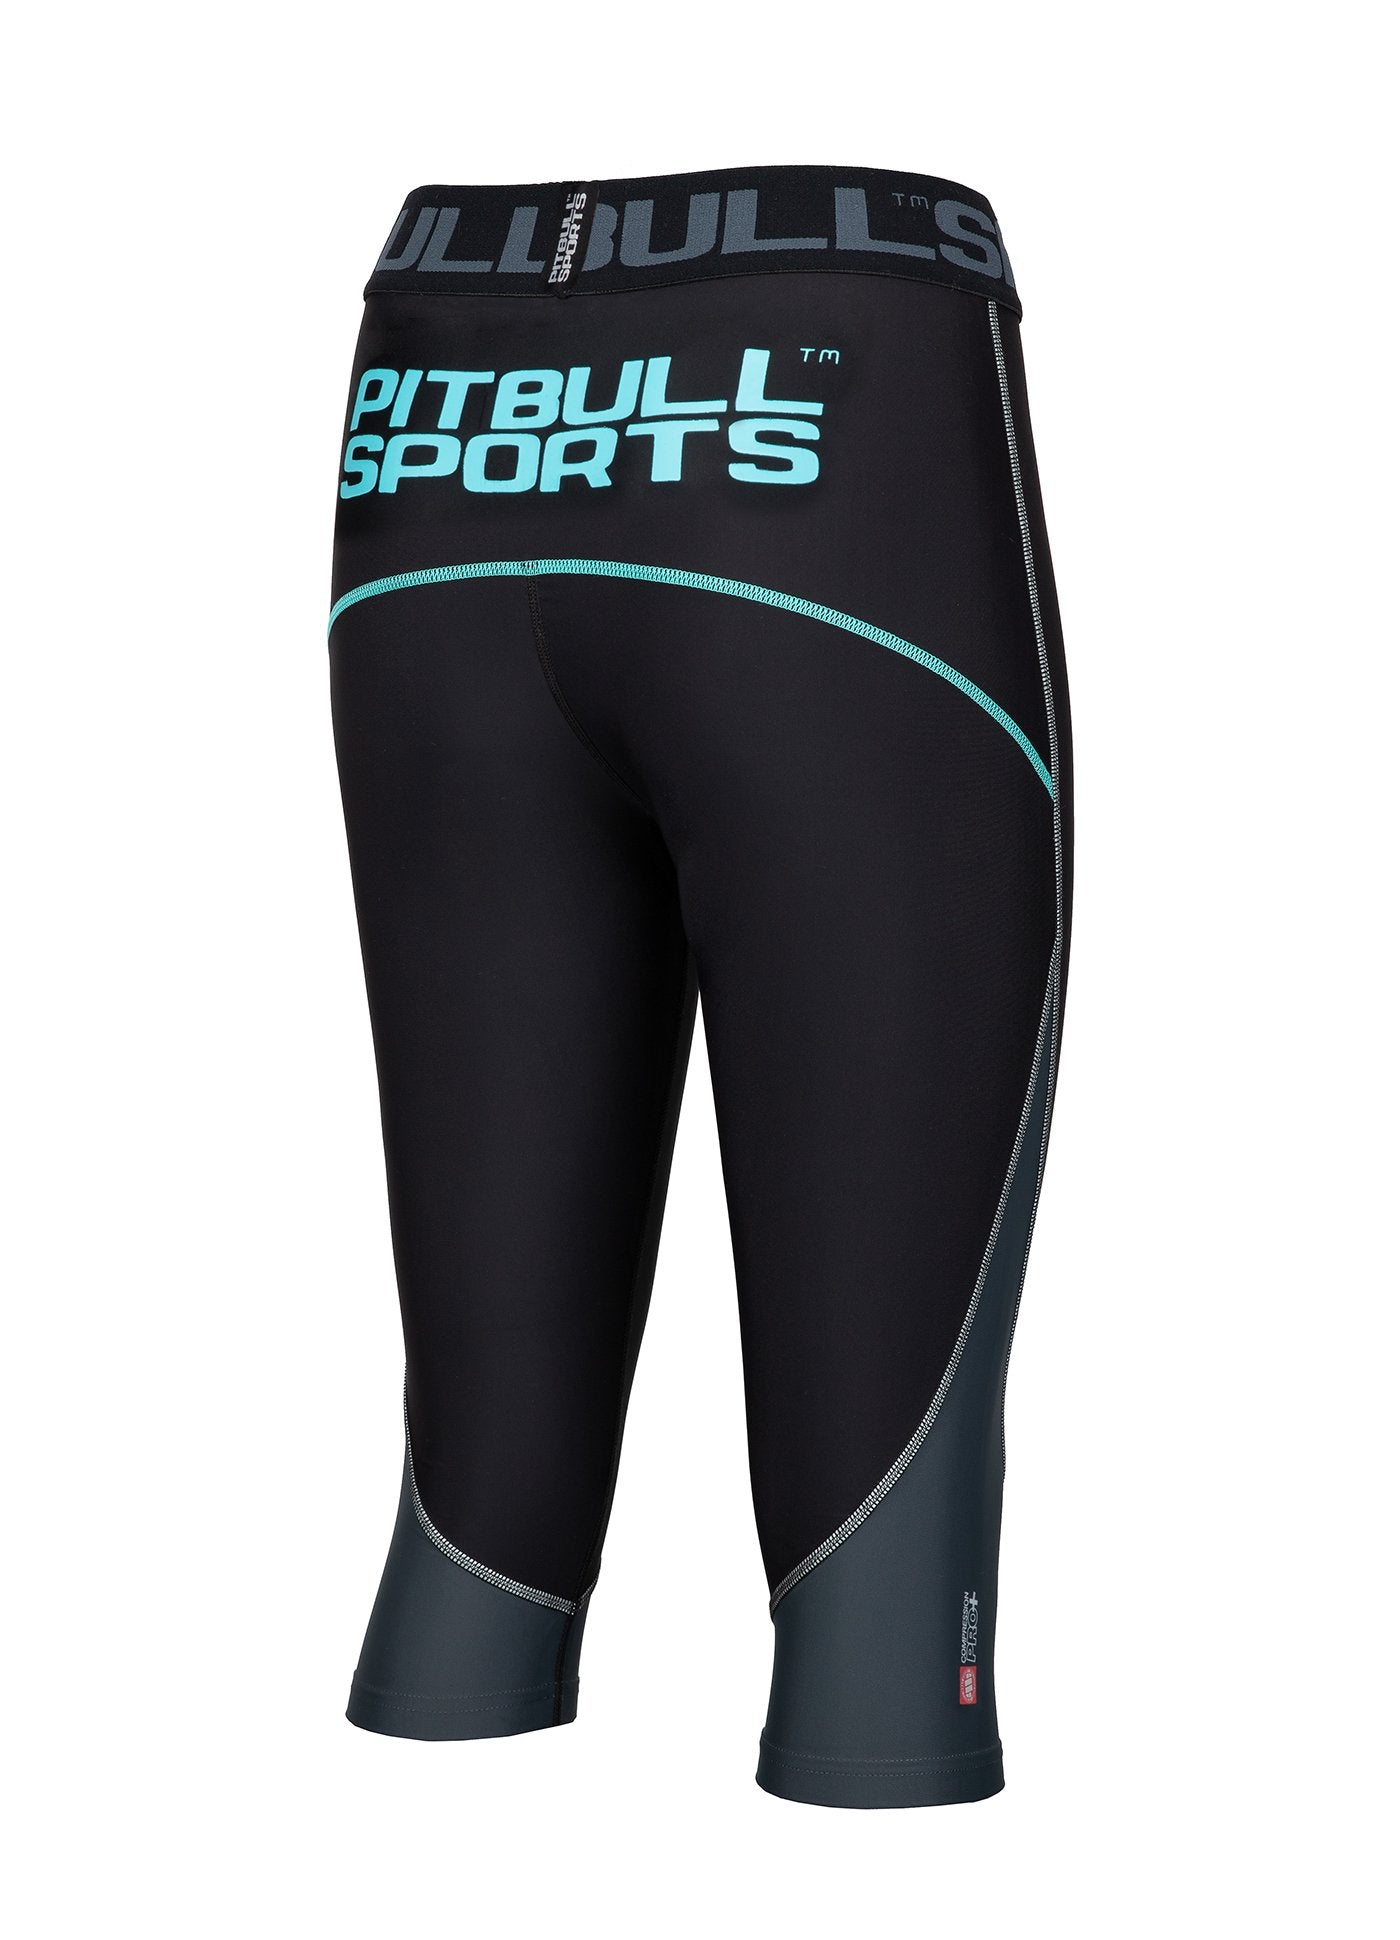 Women's Short Leggins Compression PRO PLUS Blue - Pitbull West Coast U.S.A.